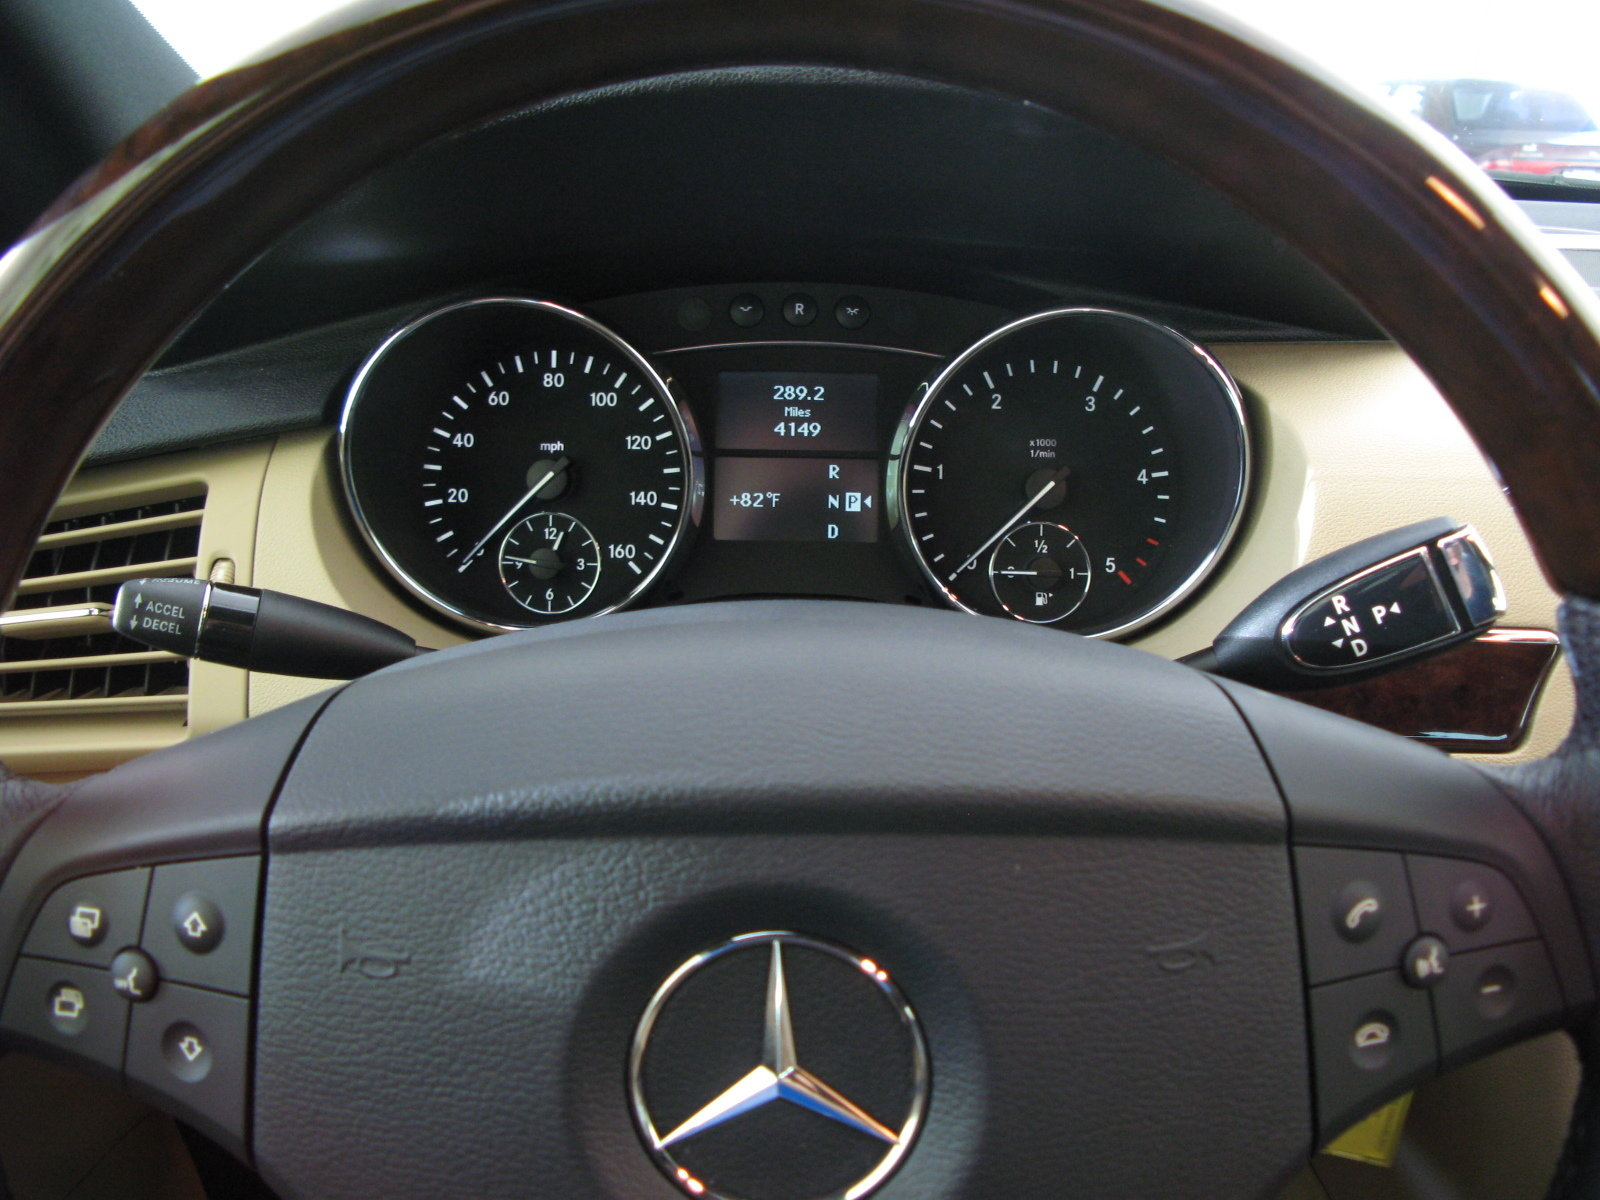 2008 mercedes r320 cdi 4 matic picture 248555 car review top speed. Black Bedroom Furniture Sets. Home Design Ideas